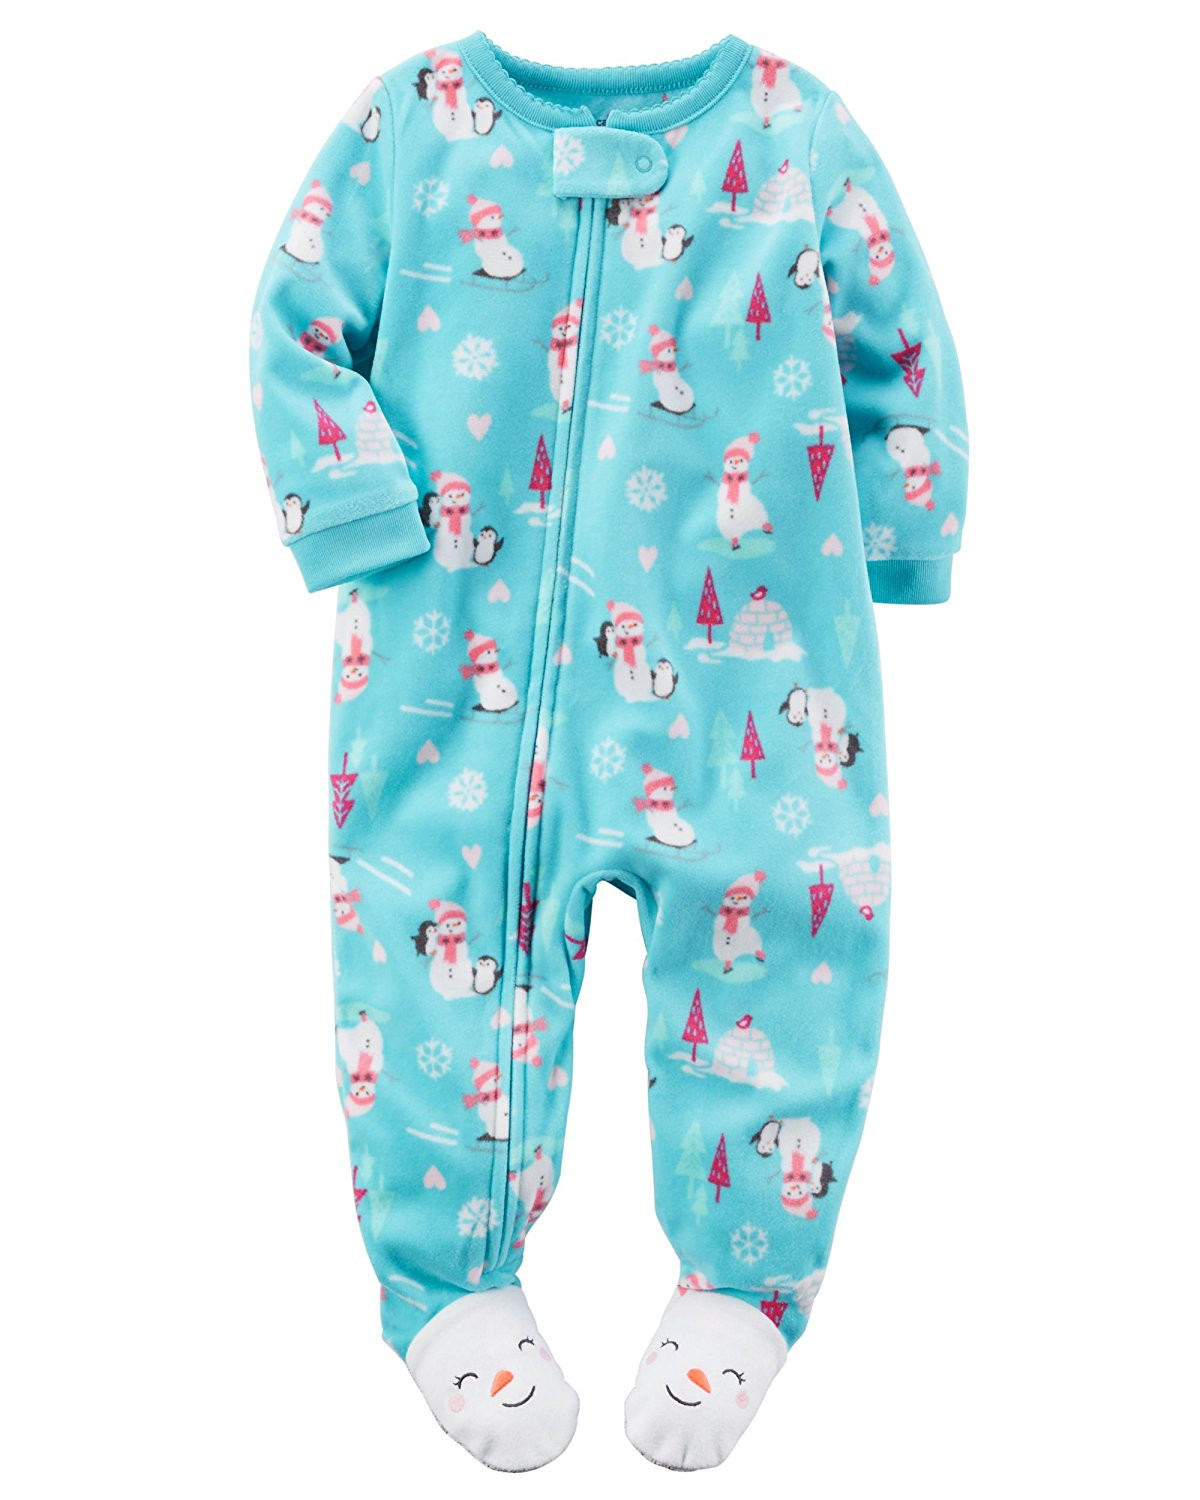 Baby Footed Pajamas Luxury Carter S Baby Girls 1 Piece Footed Fleece Pajamas Pj S Of Amazing 42 Pictures Baby Footed Pajamas